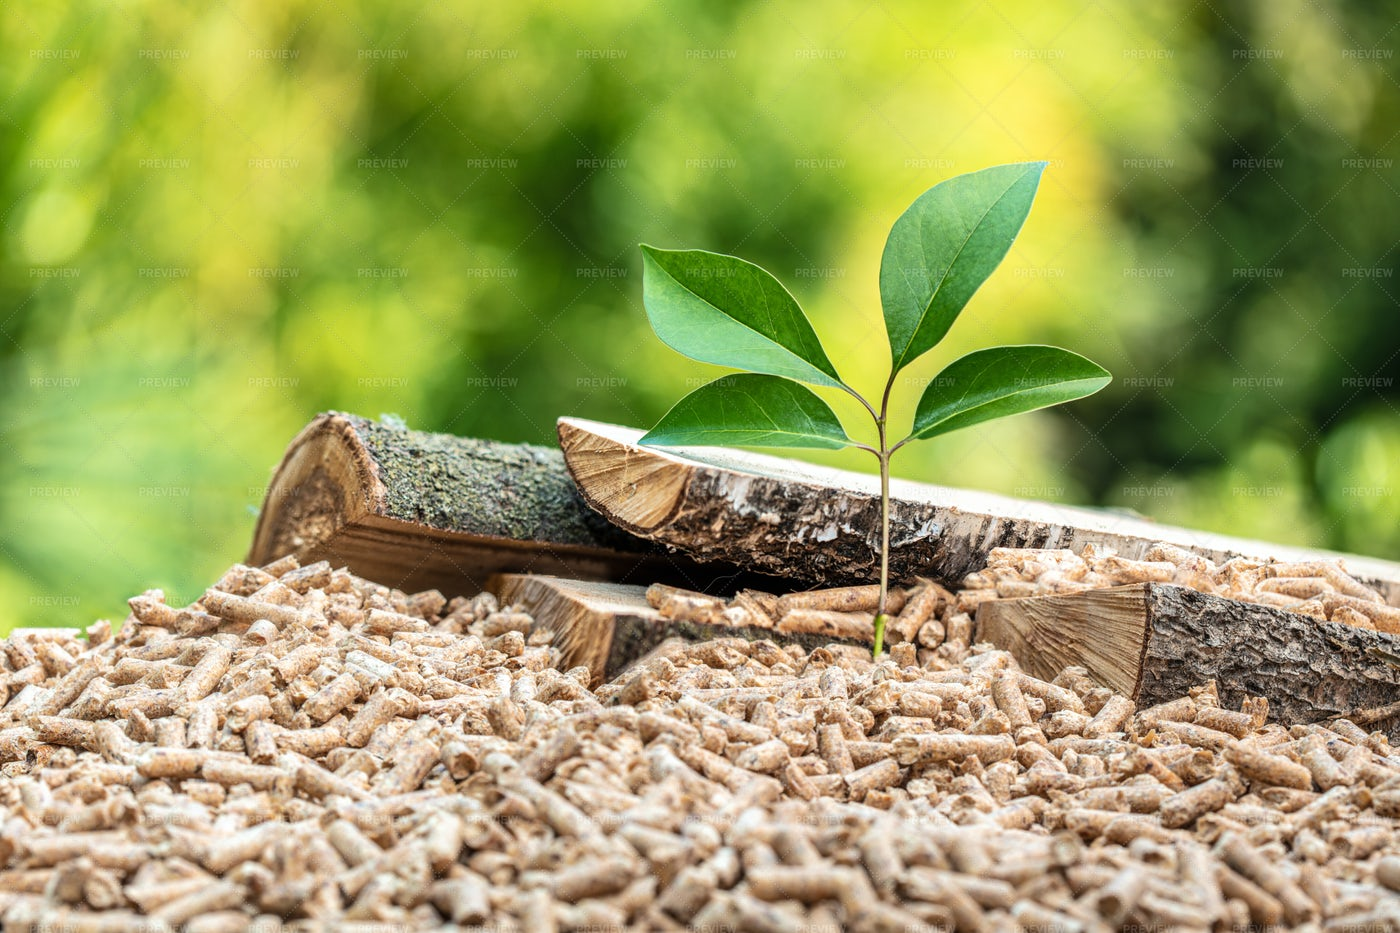 Eco Wood Pellets With Seedling: Stock Photos